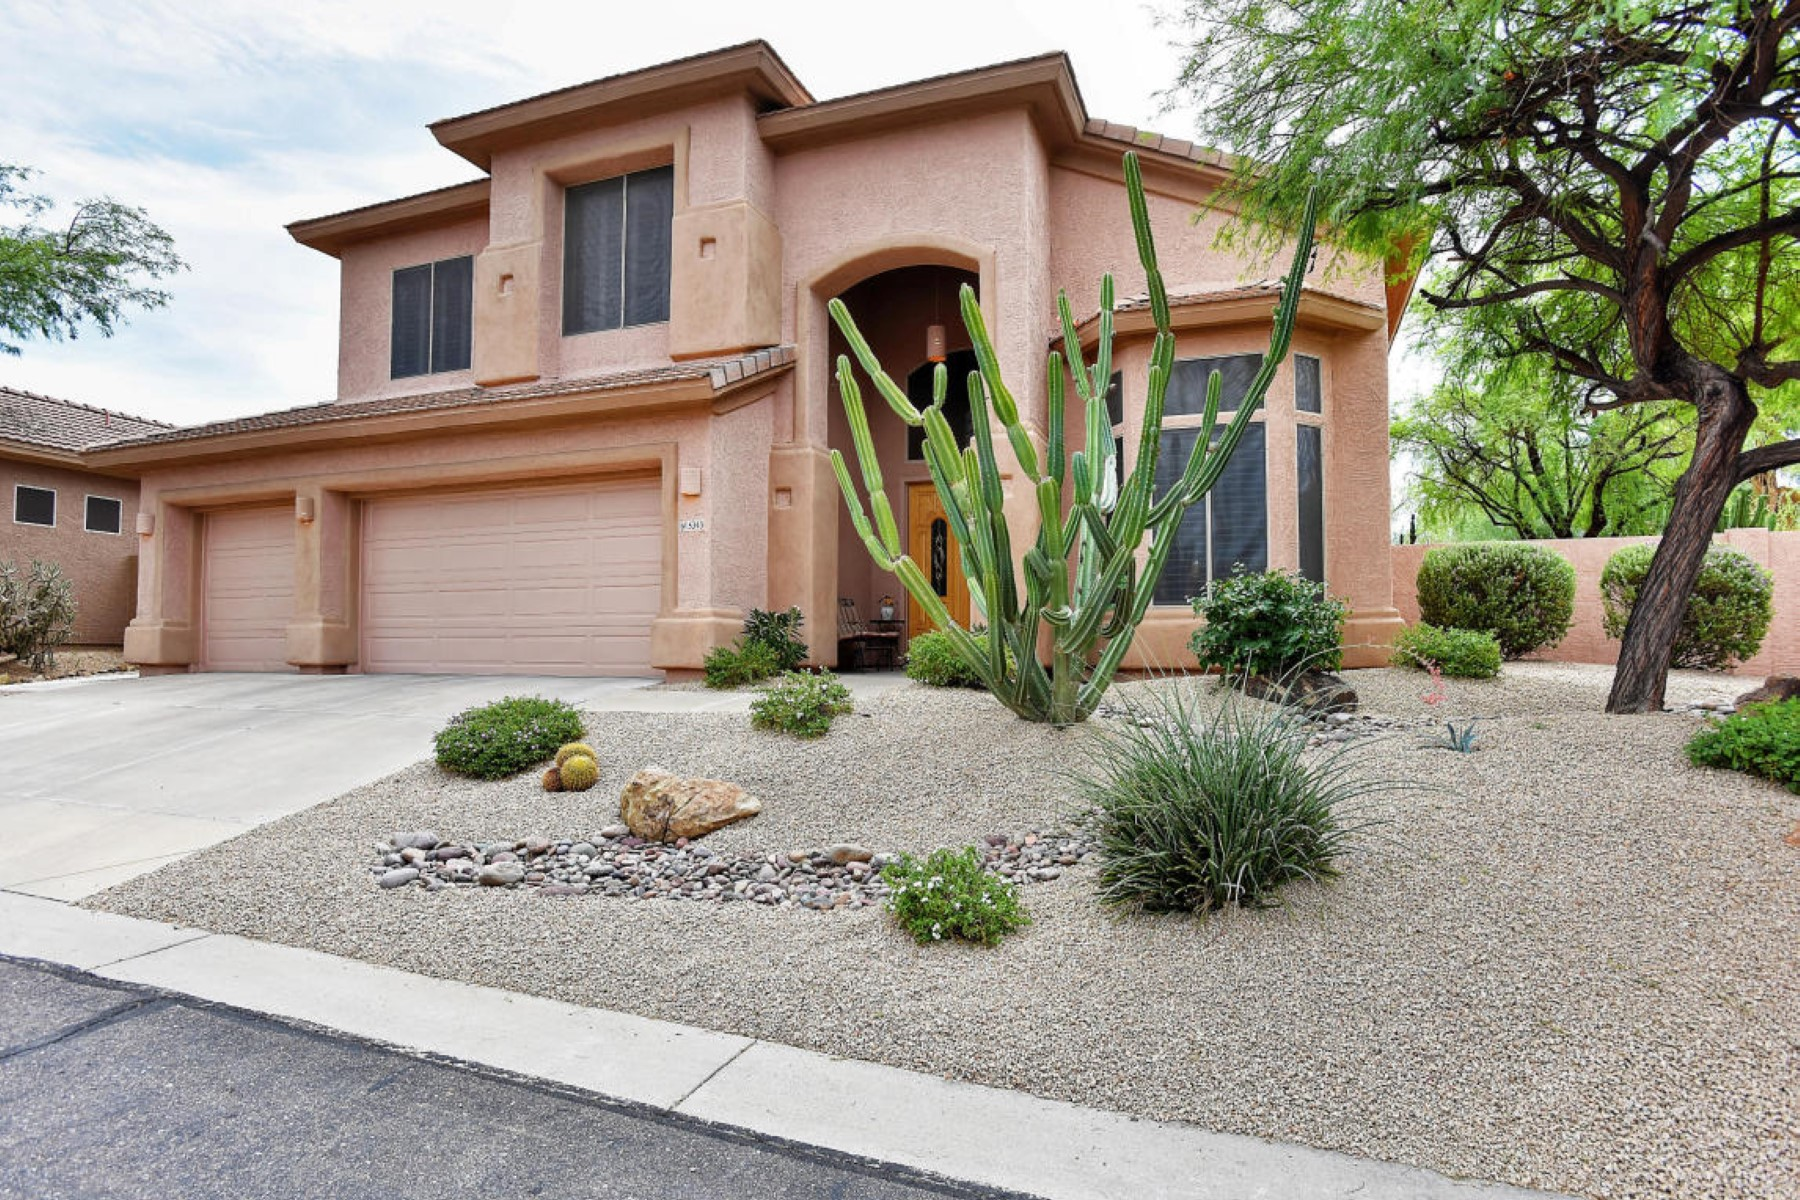 Property For Sale at Fantastic six bedroomed home in the gated community of Desert Wind.